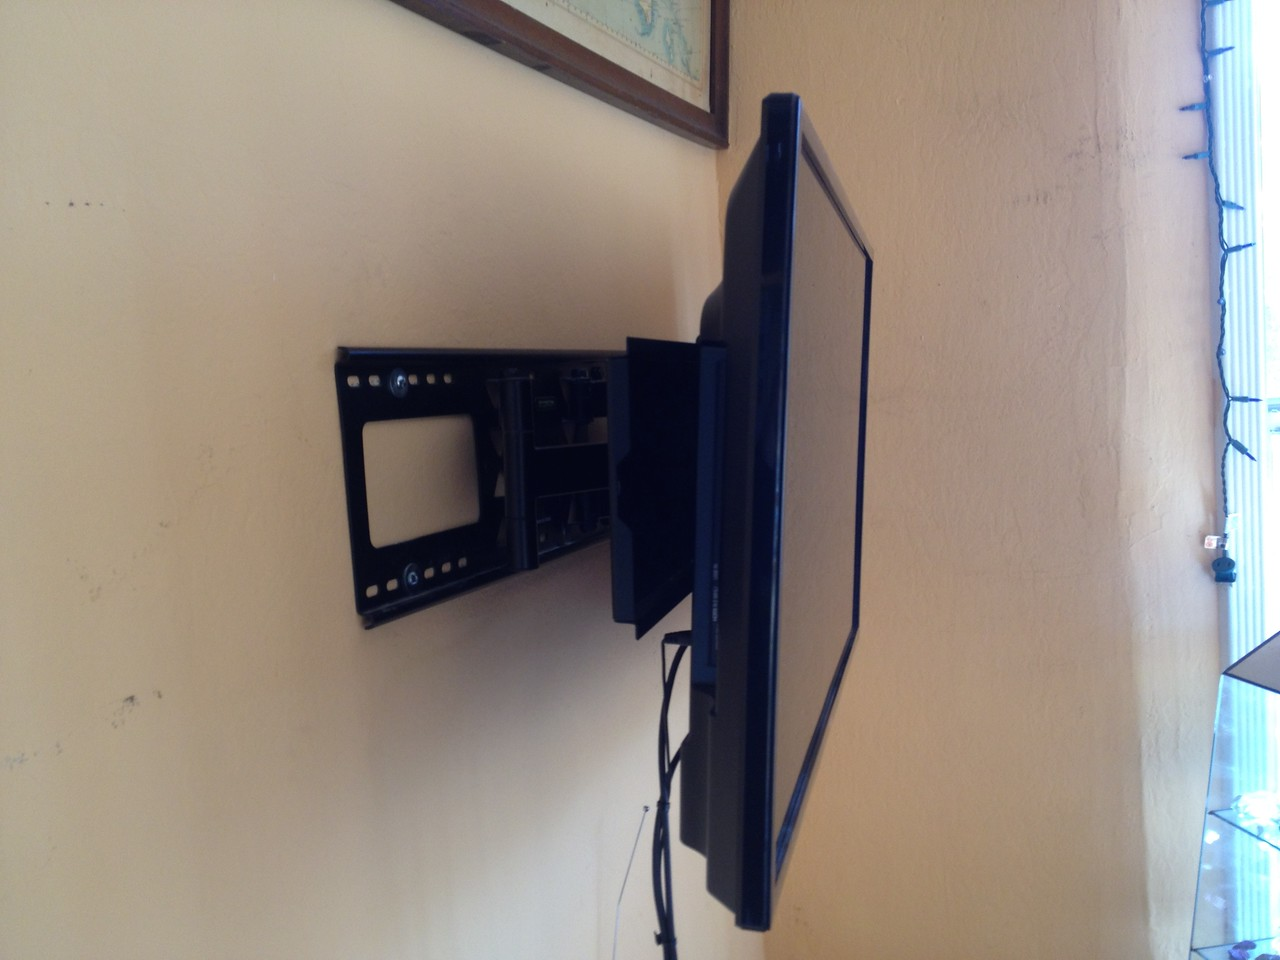 TV bracket installation, points 45 degrees in either direction.